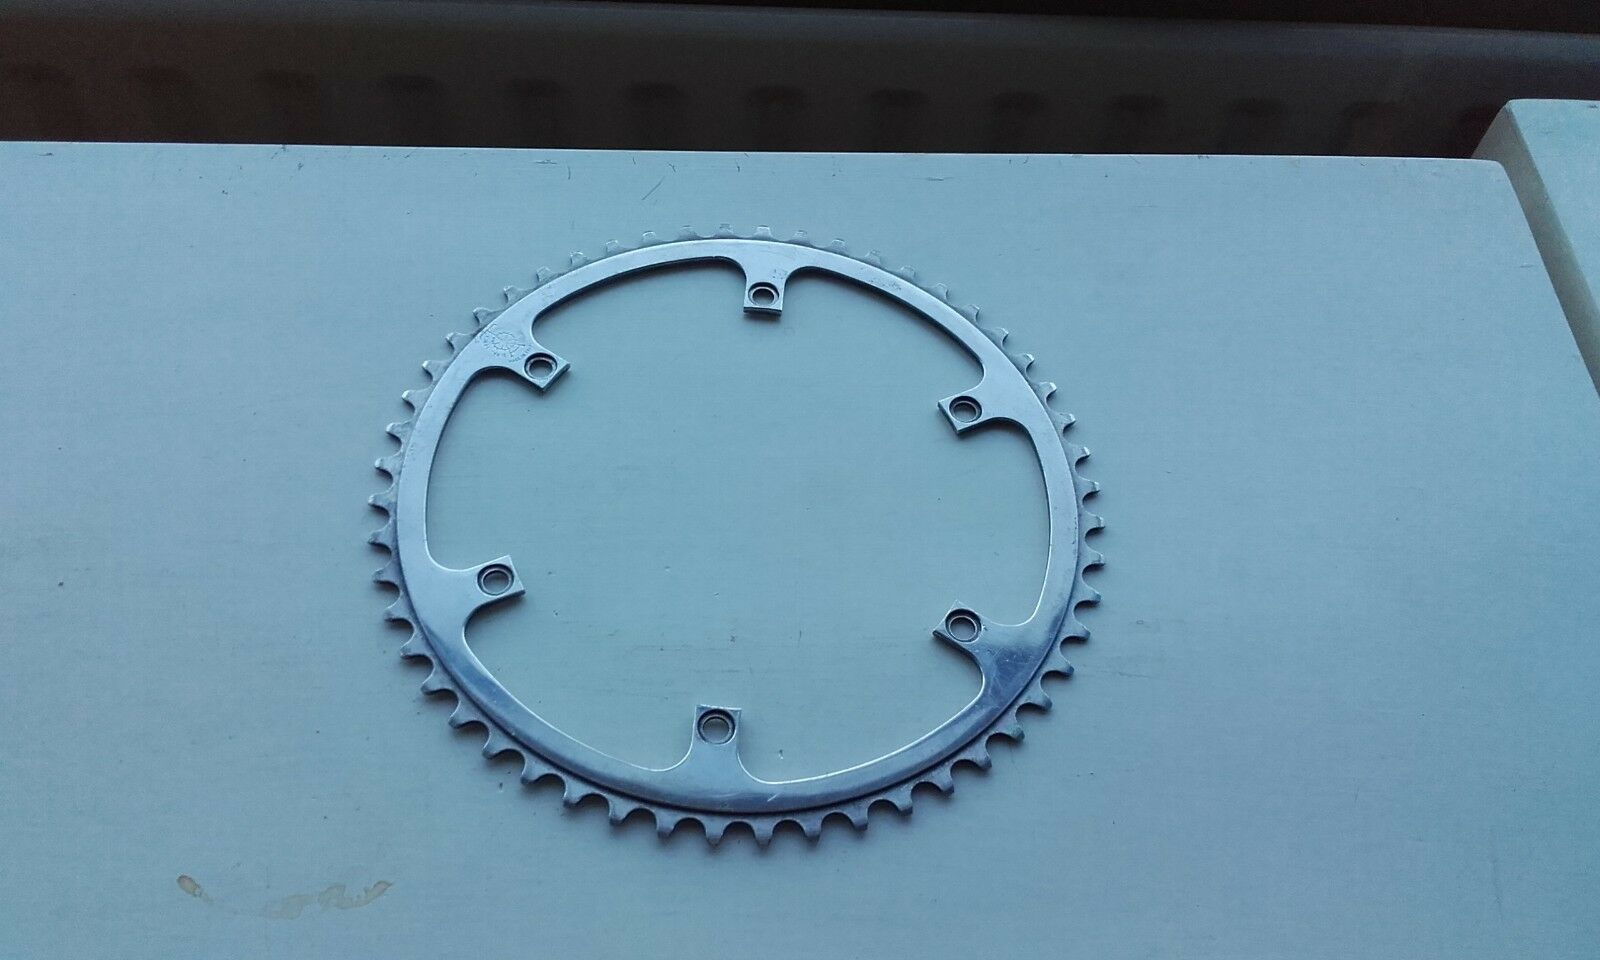 52t TA specialties pro vis cyclotouriste bike chainring 50.4mm 50.4 pcd 3 32